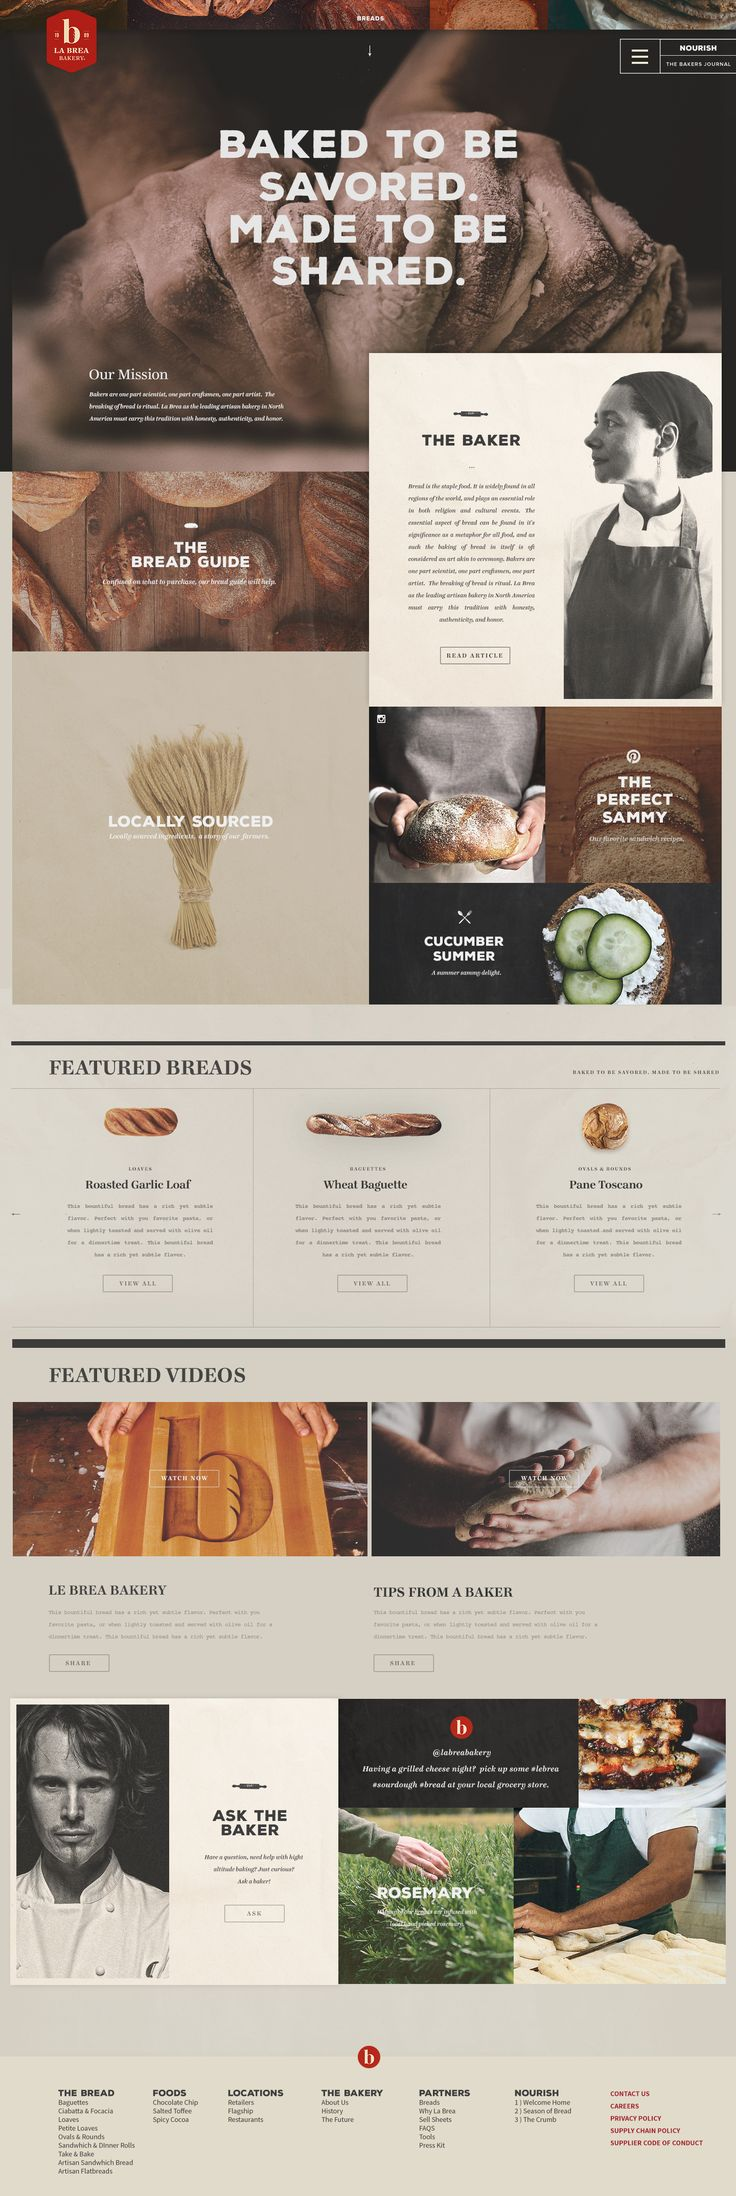 La Brea Bakery. Still a concept website. #webdesign #design (View more at www.aldenchong.com)